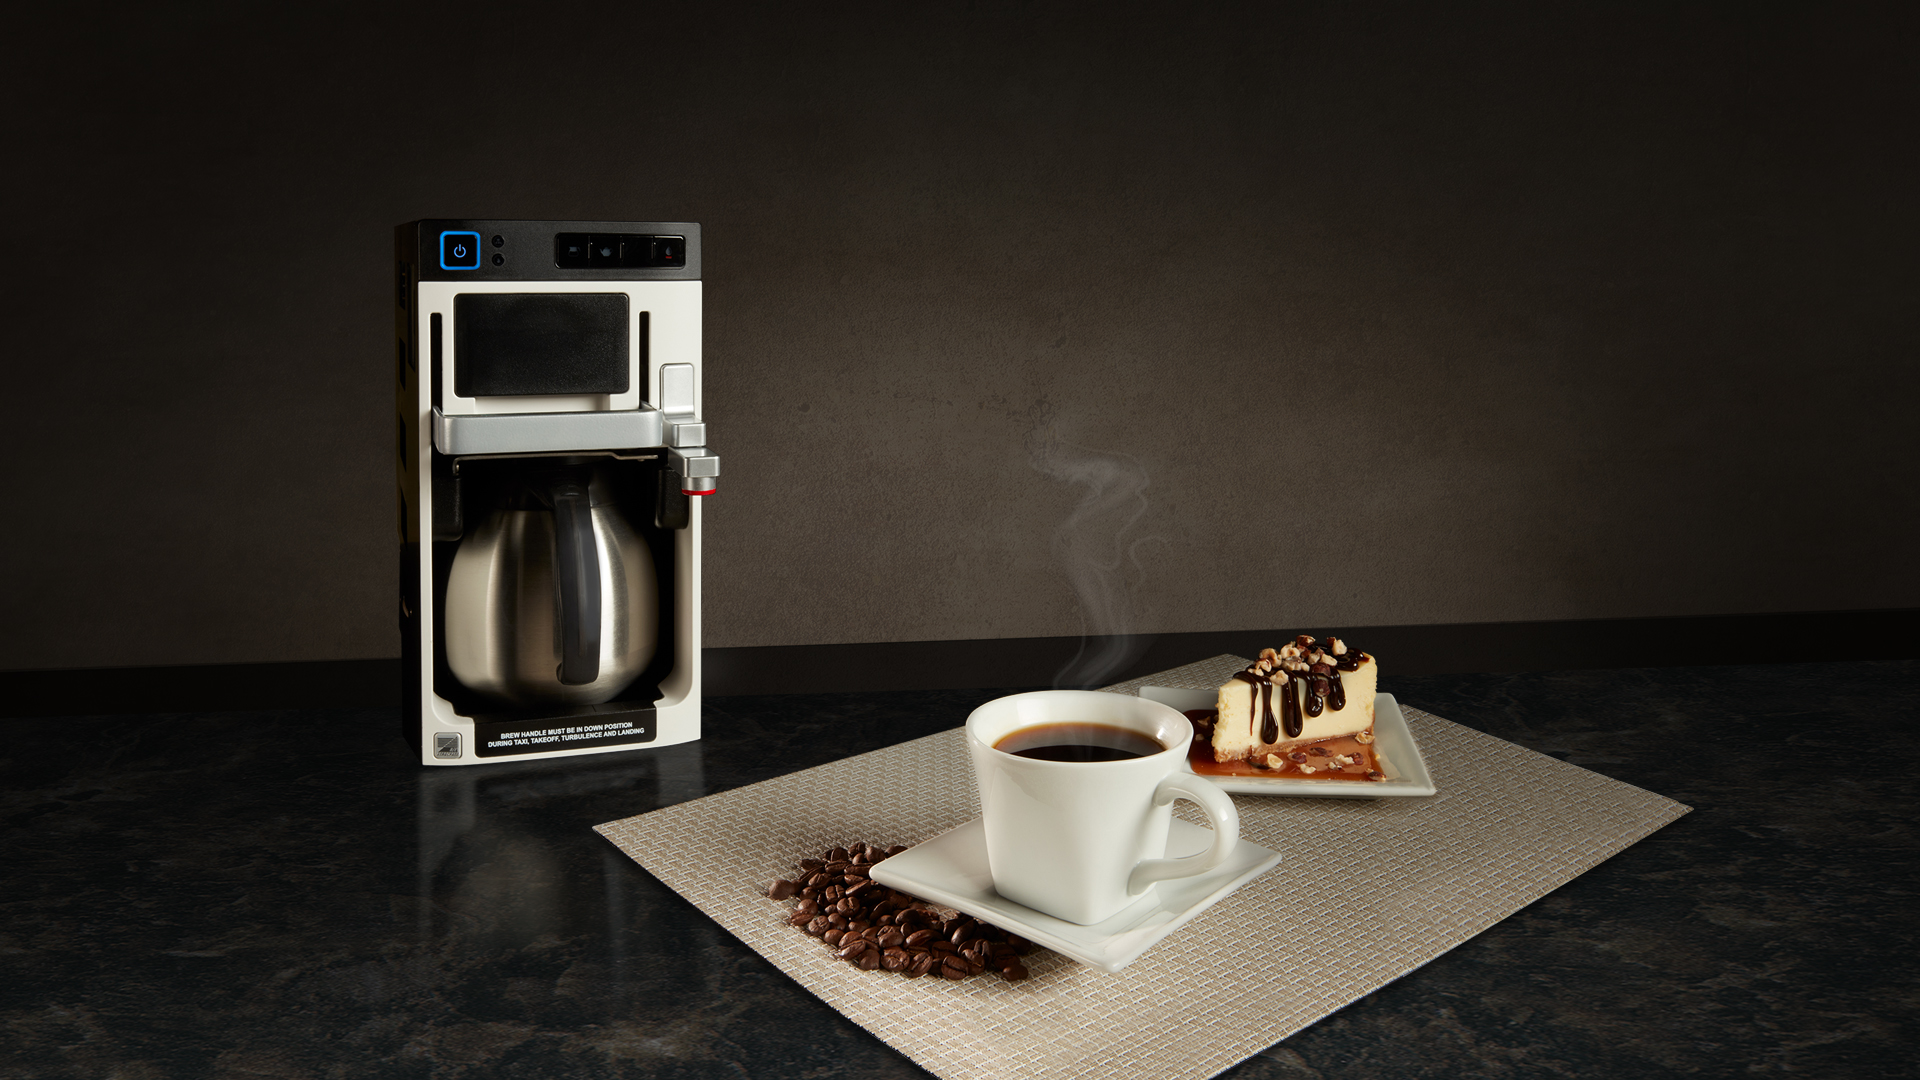 Essence beverage maker on counter with coffee and chessecake on a placemat